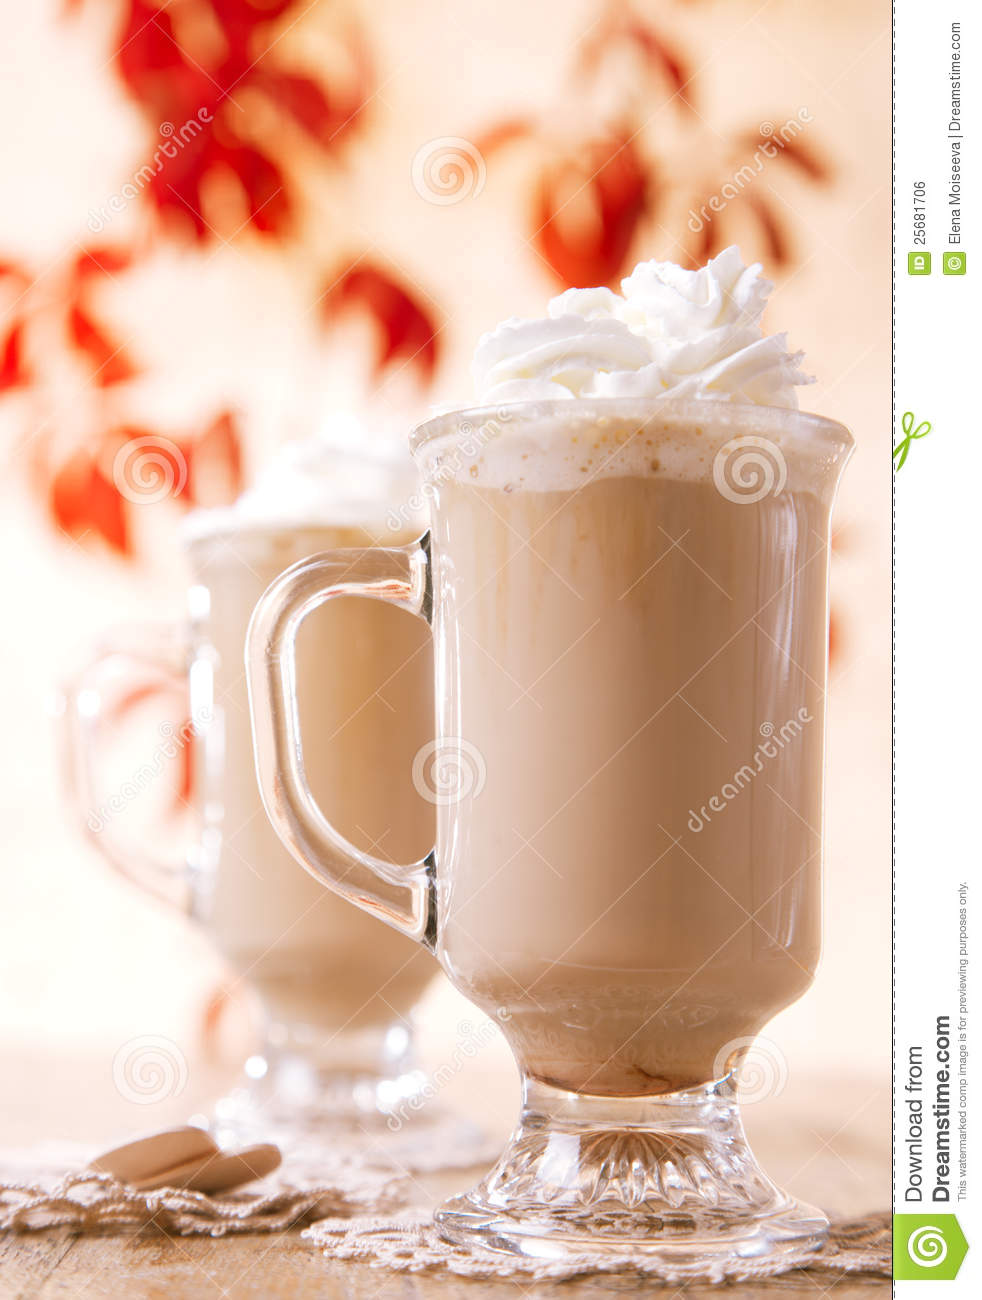 coffee latte macchiato with cream royalty free stock image image 25681706. Black Bedroom Furniture Sets. Home Design Ideas